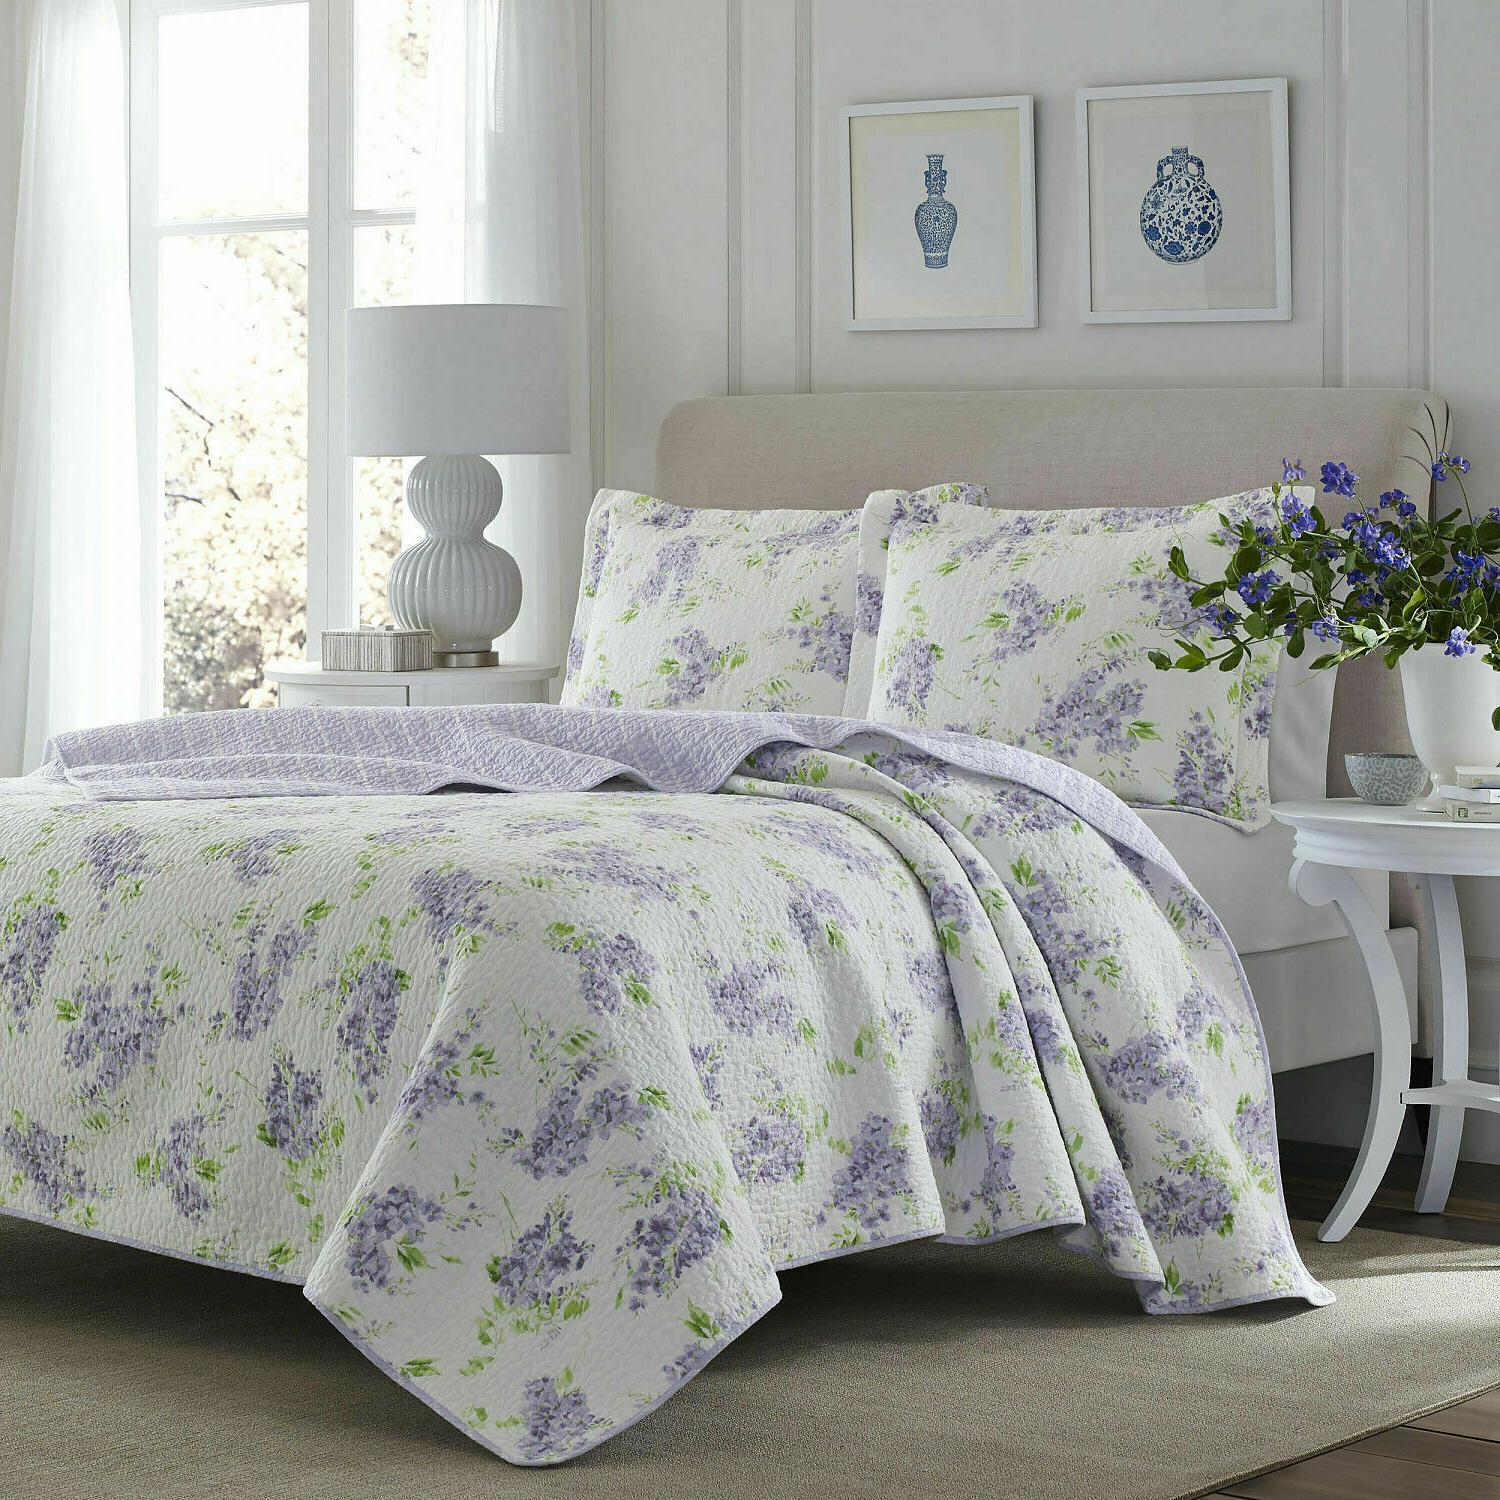 Laura Ashley Keighley Floral Lilac Cotton 3-PC Quilt ,Coverl